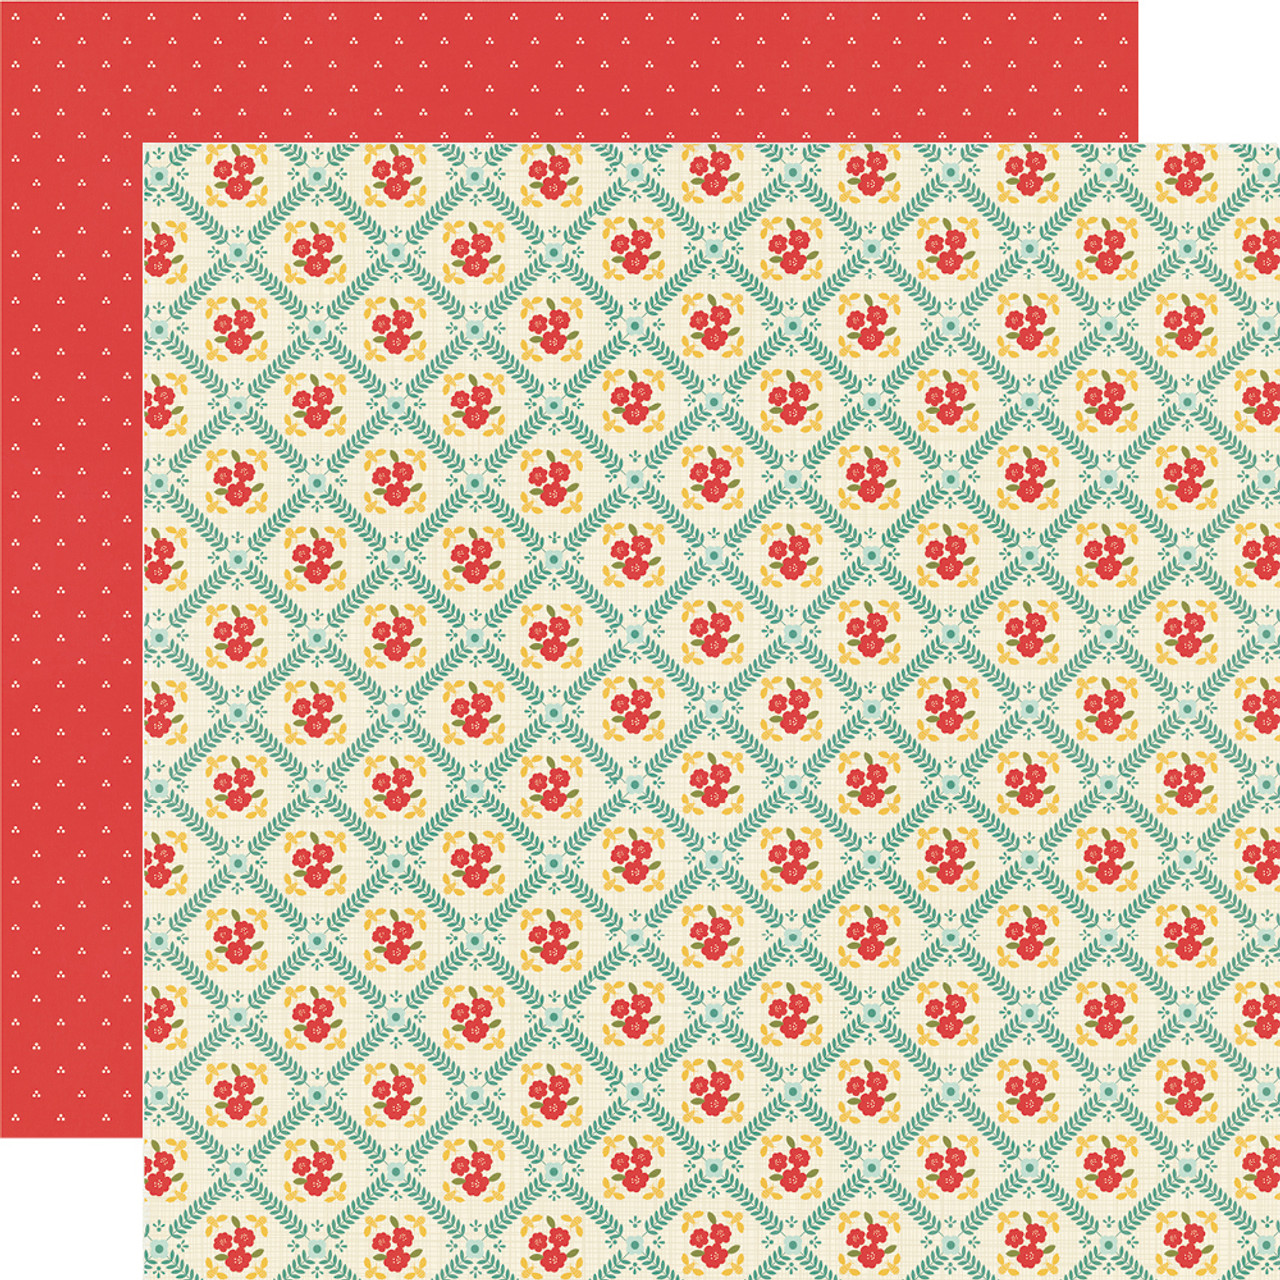 Apron Strings Collection What's for Dinner? 12 x 12 Double-Sided Scrapbook Paper by Simple Stories